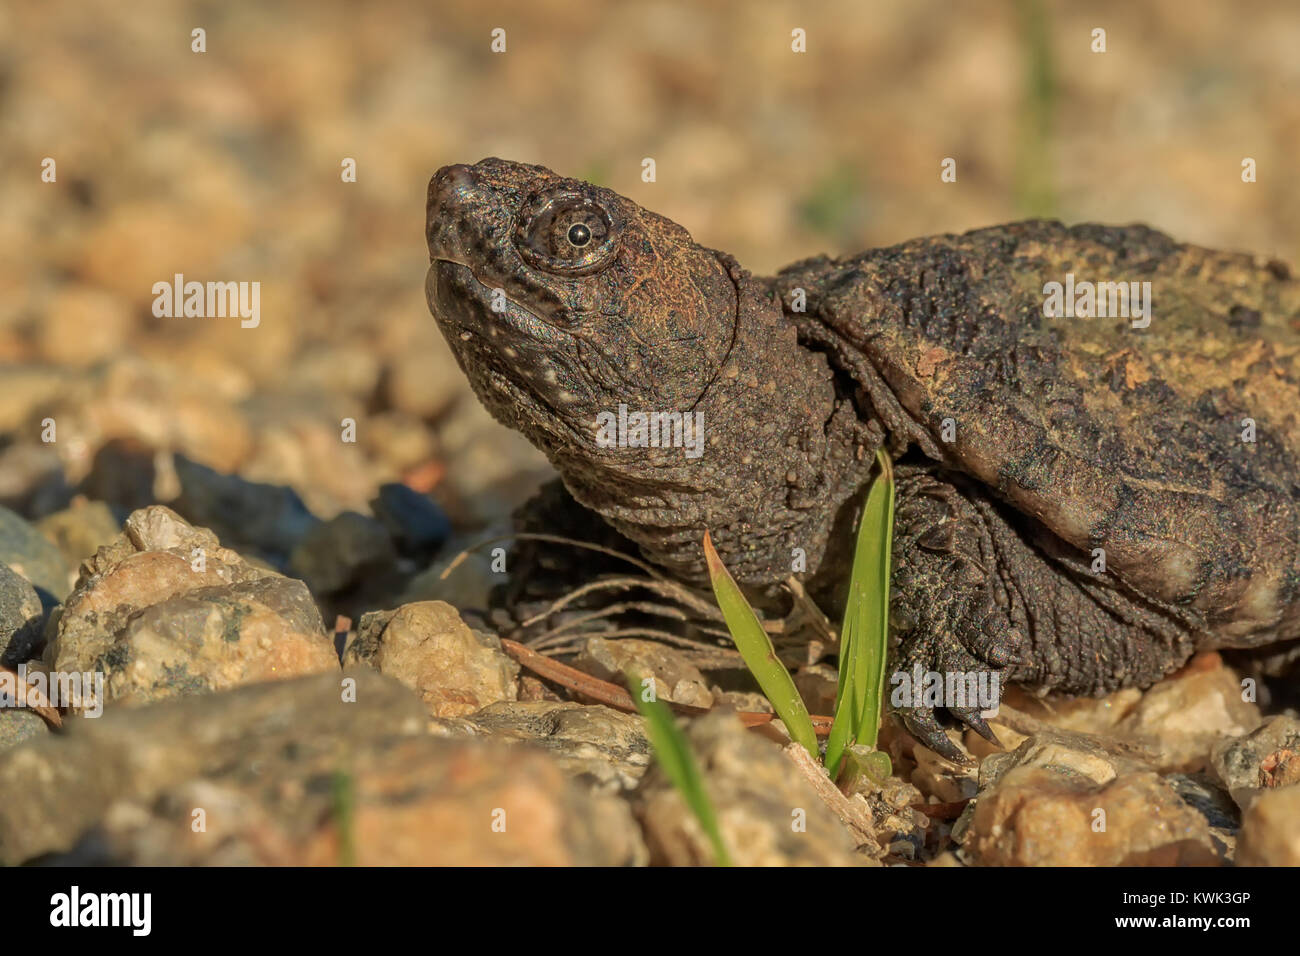 A portrait of a baby Common Snapping Turtle, slightly larger than a half dollar. Stock Photo